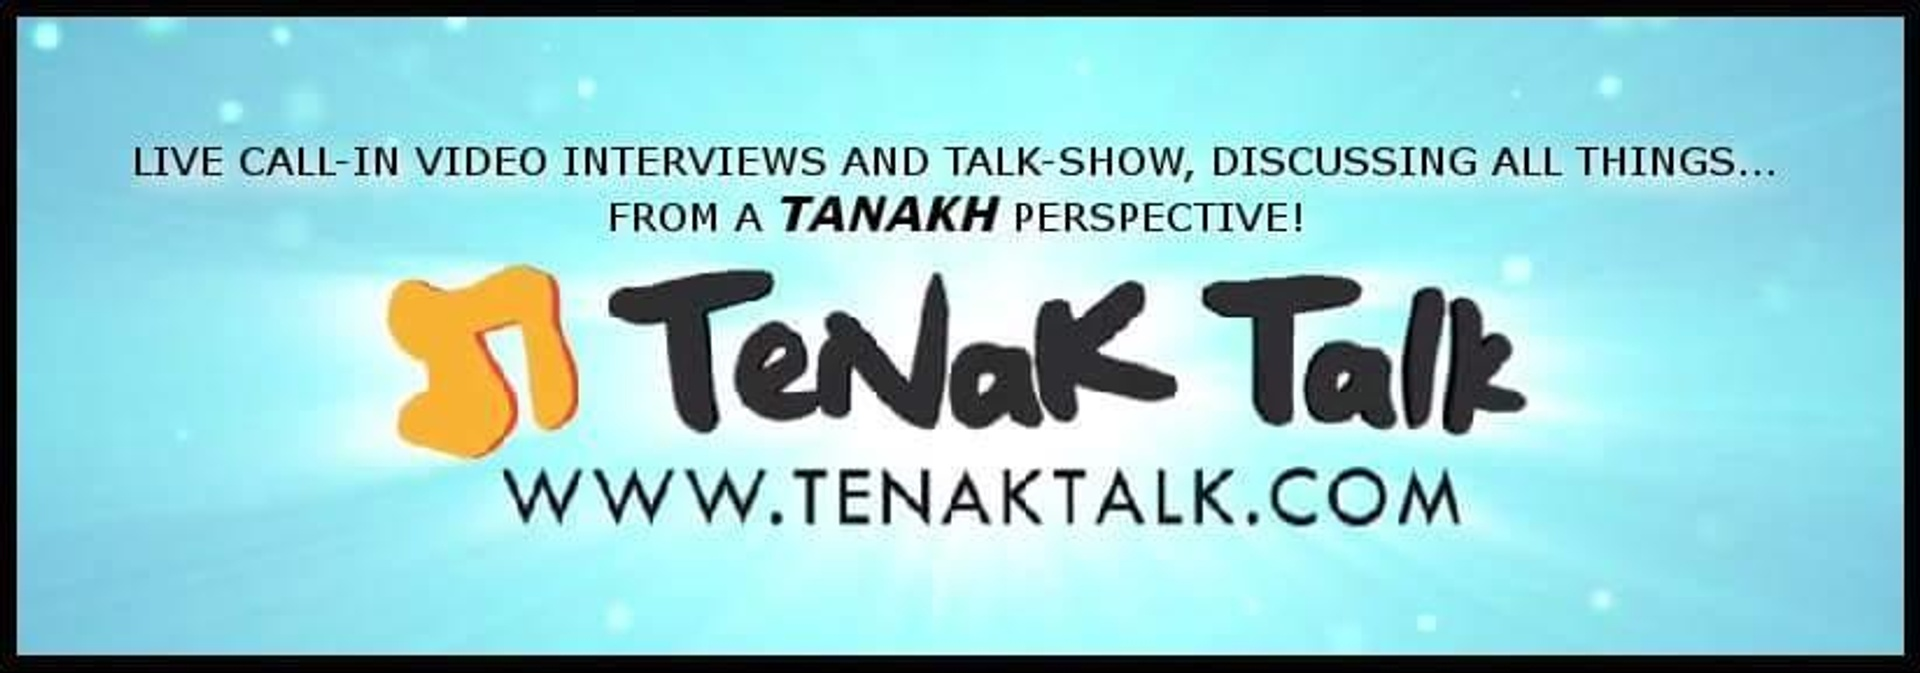 TeNaK Talk Is Creating Live Video Shows